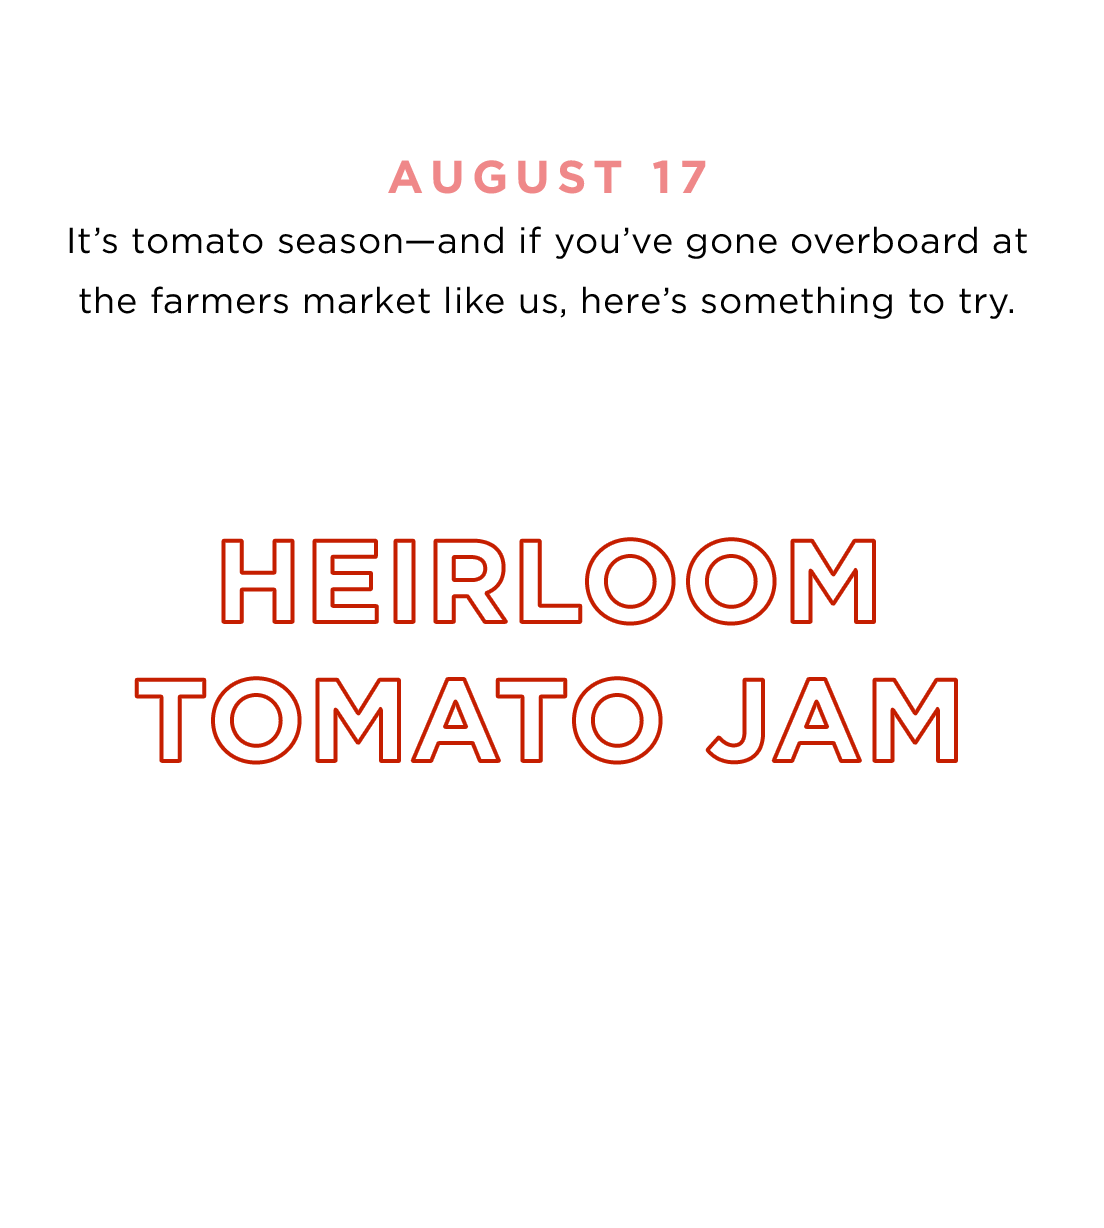 AUGUST 17 - Heirloom Tomato Jam